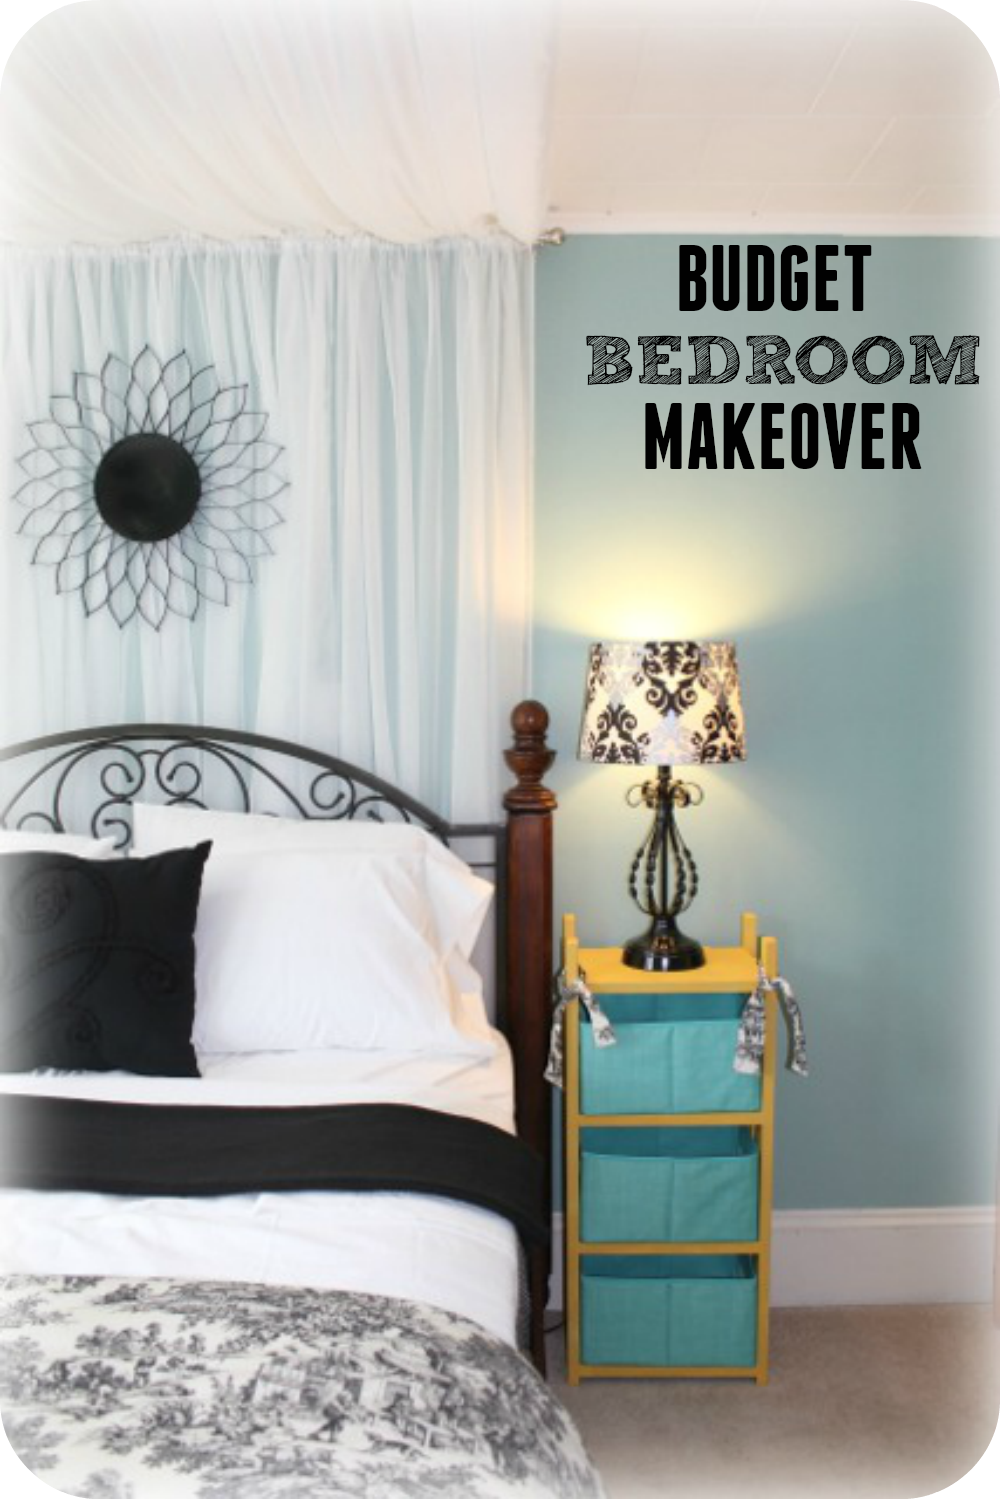 Wondering How To Decorate Your Bedroom For Less? Here Is A Beautiful Bedroom  Makeover For